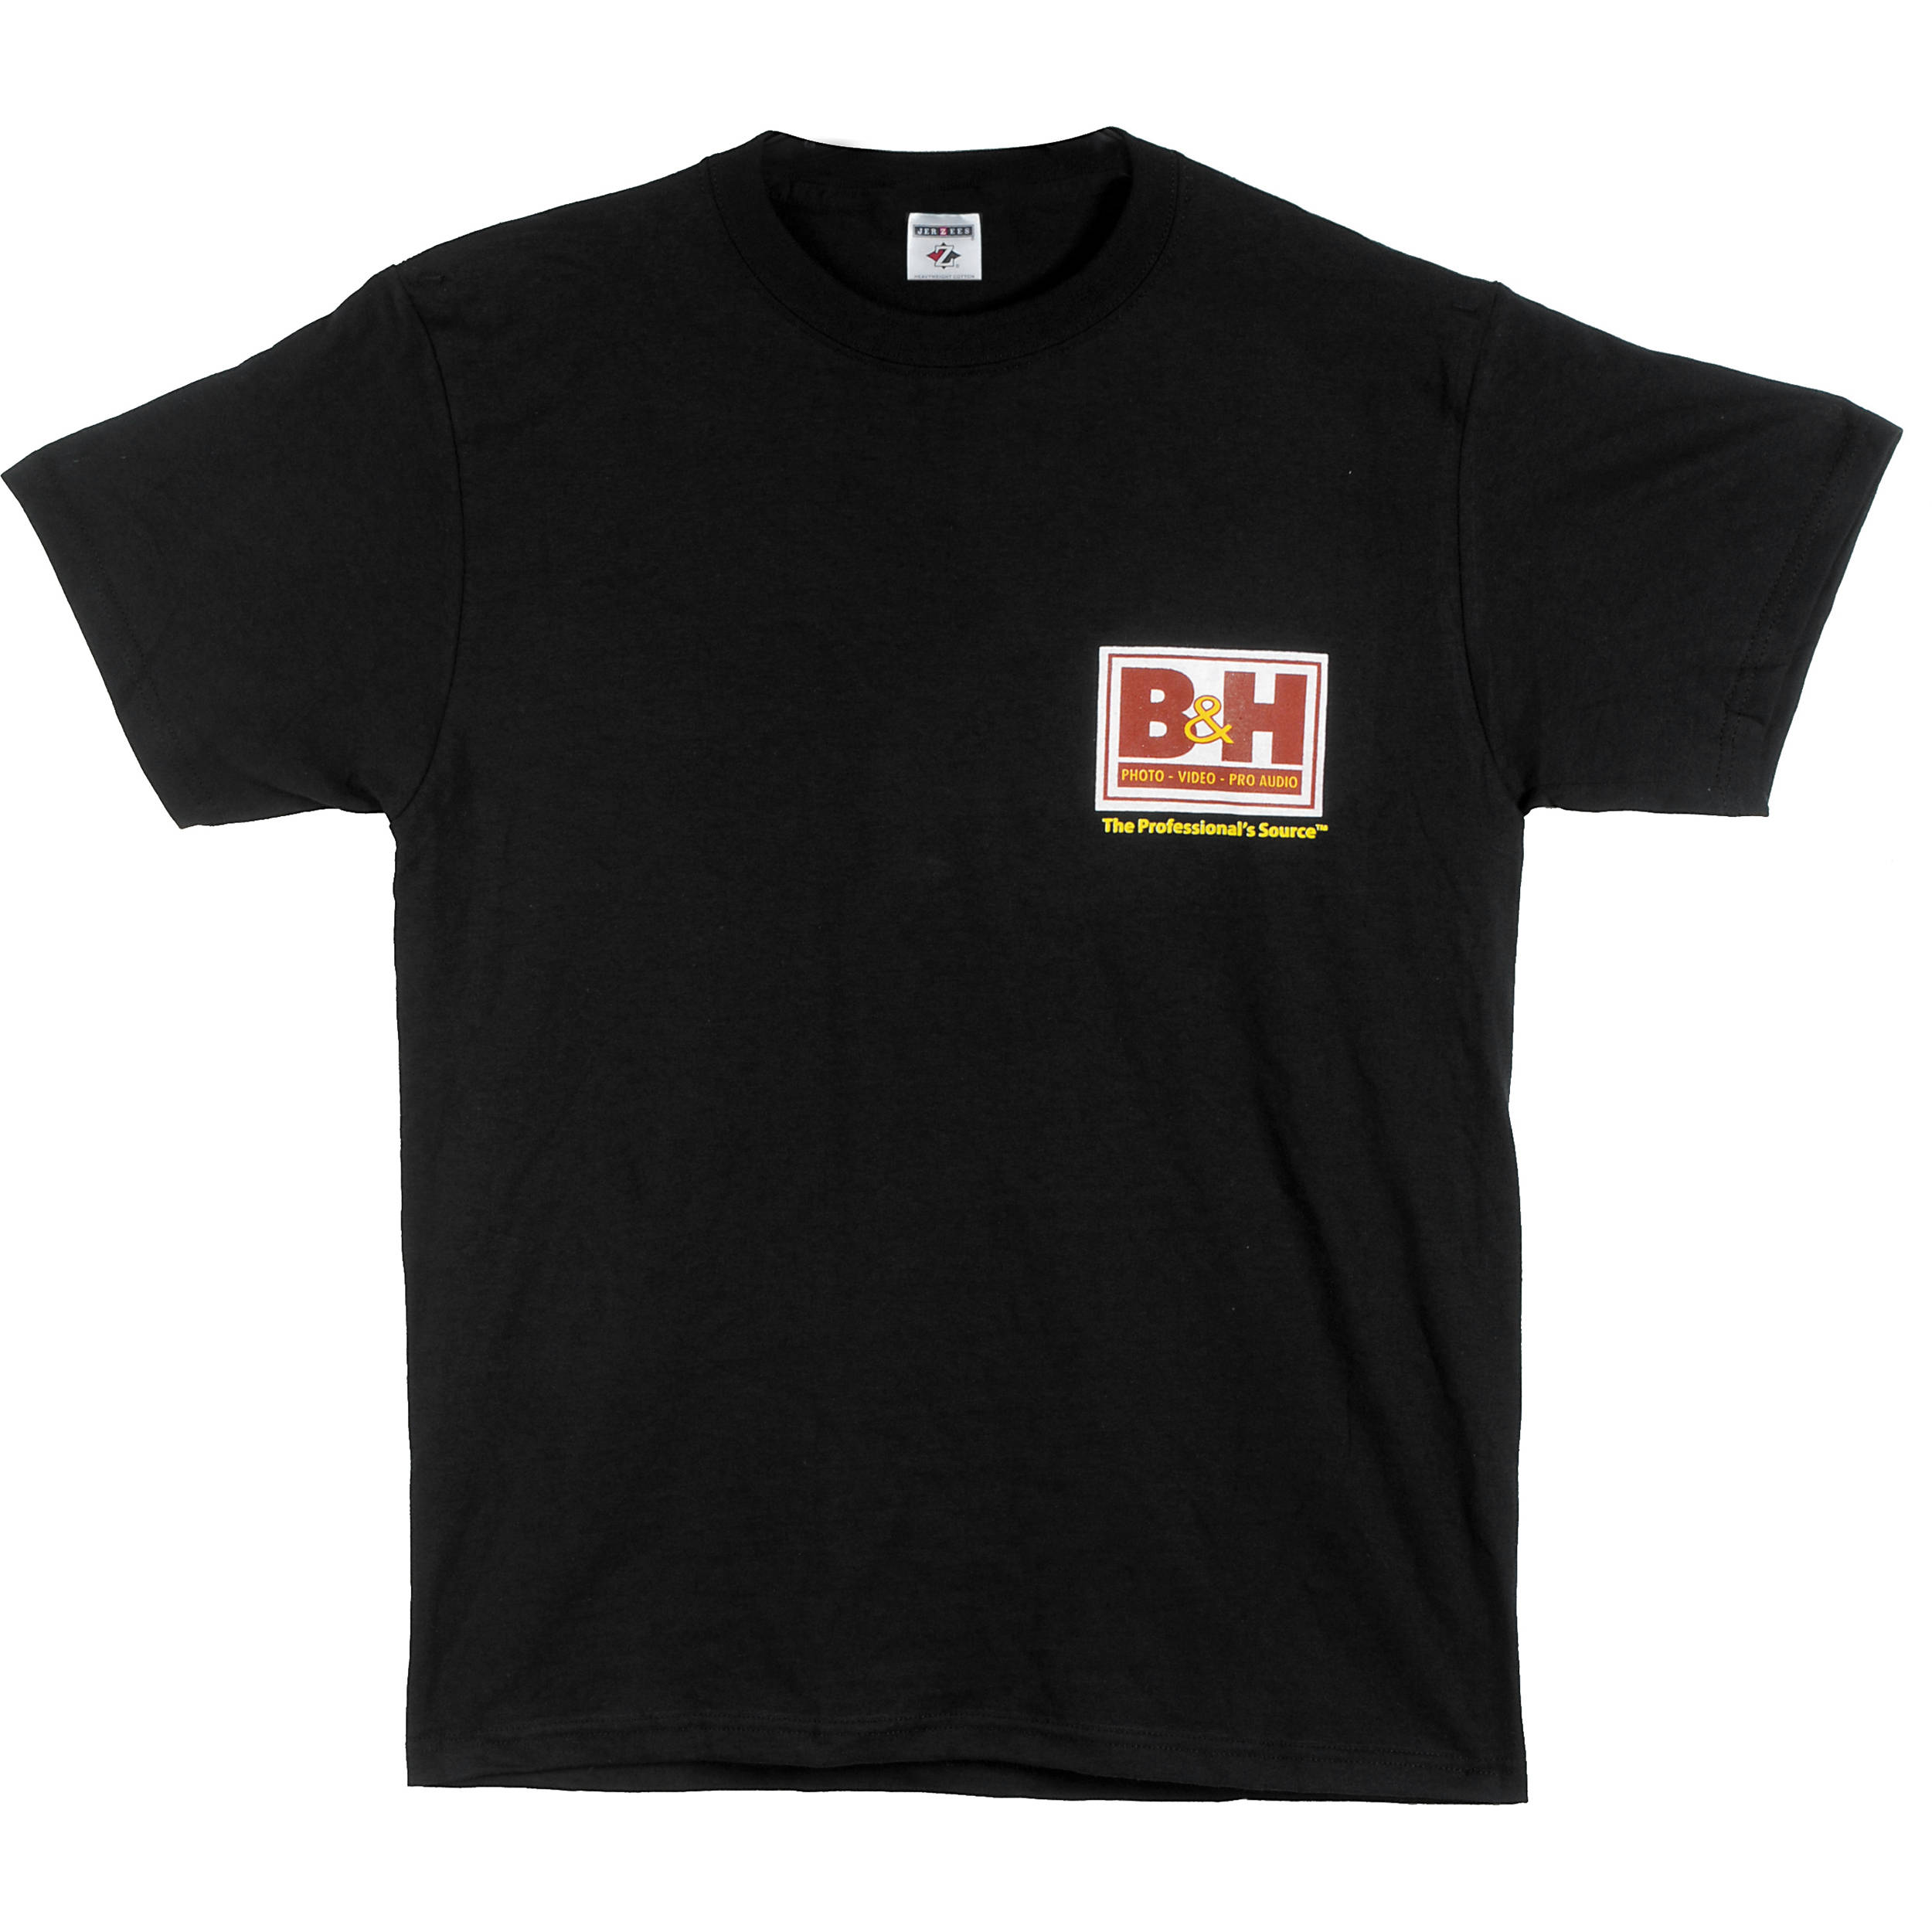 b h photo video web logo t shirt medium black bhw tbm b h. Black Bedroom Furniture Sets. Home Design Ideas